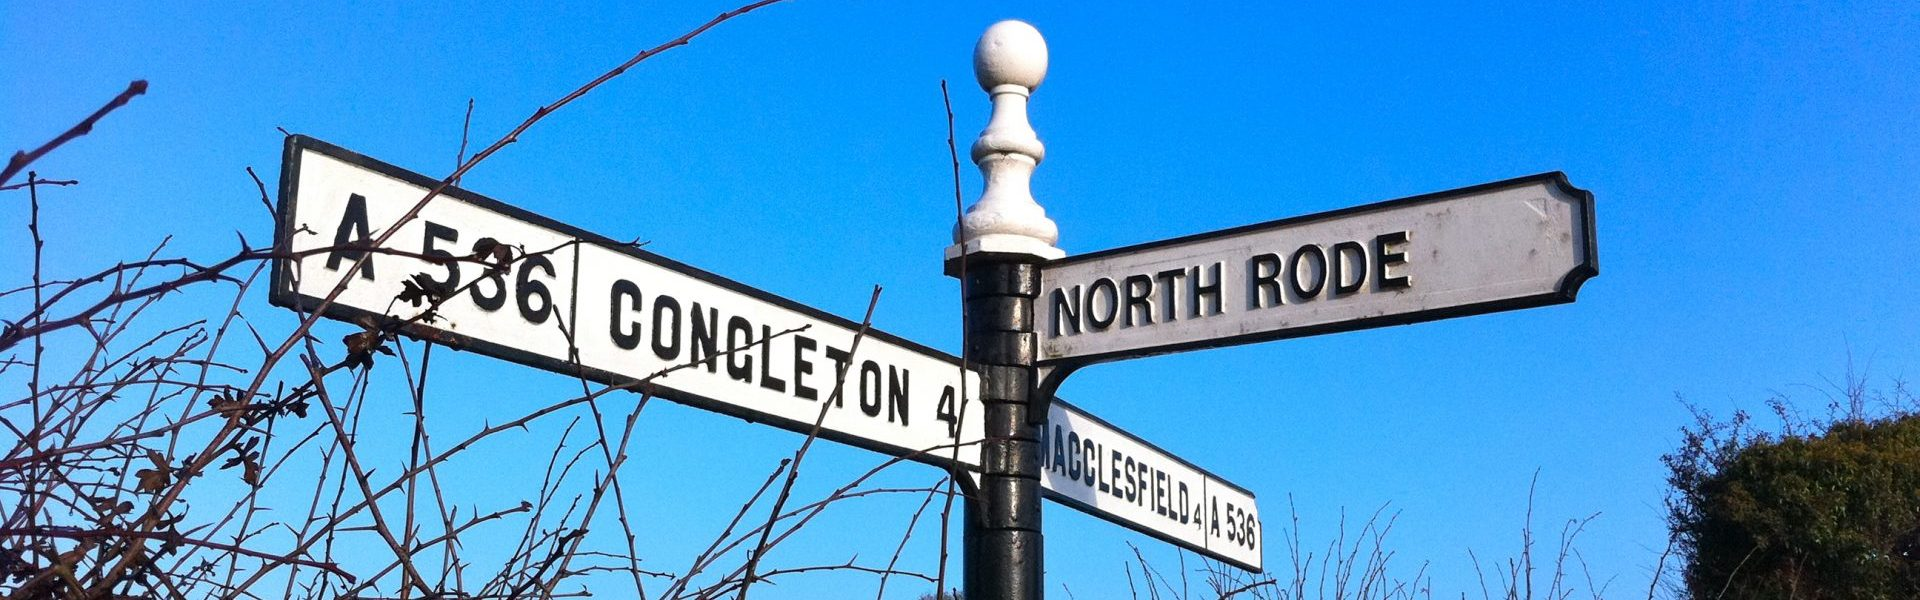 North Rode, Congleton, Macclesfield Sign